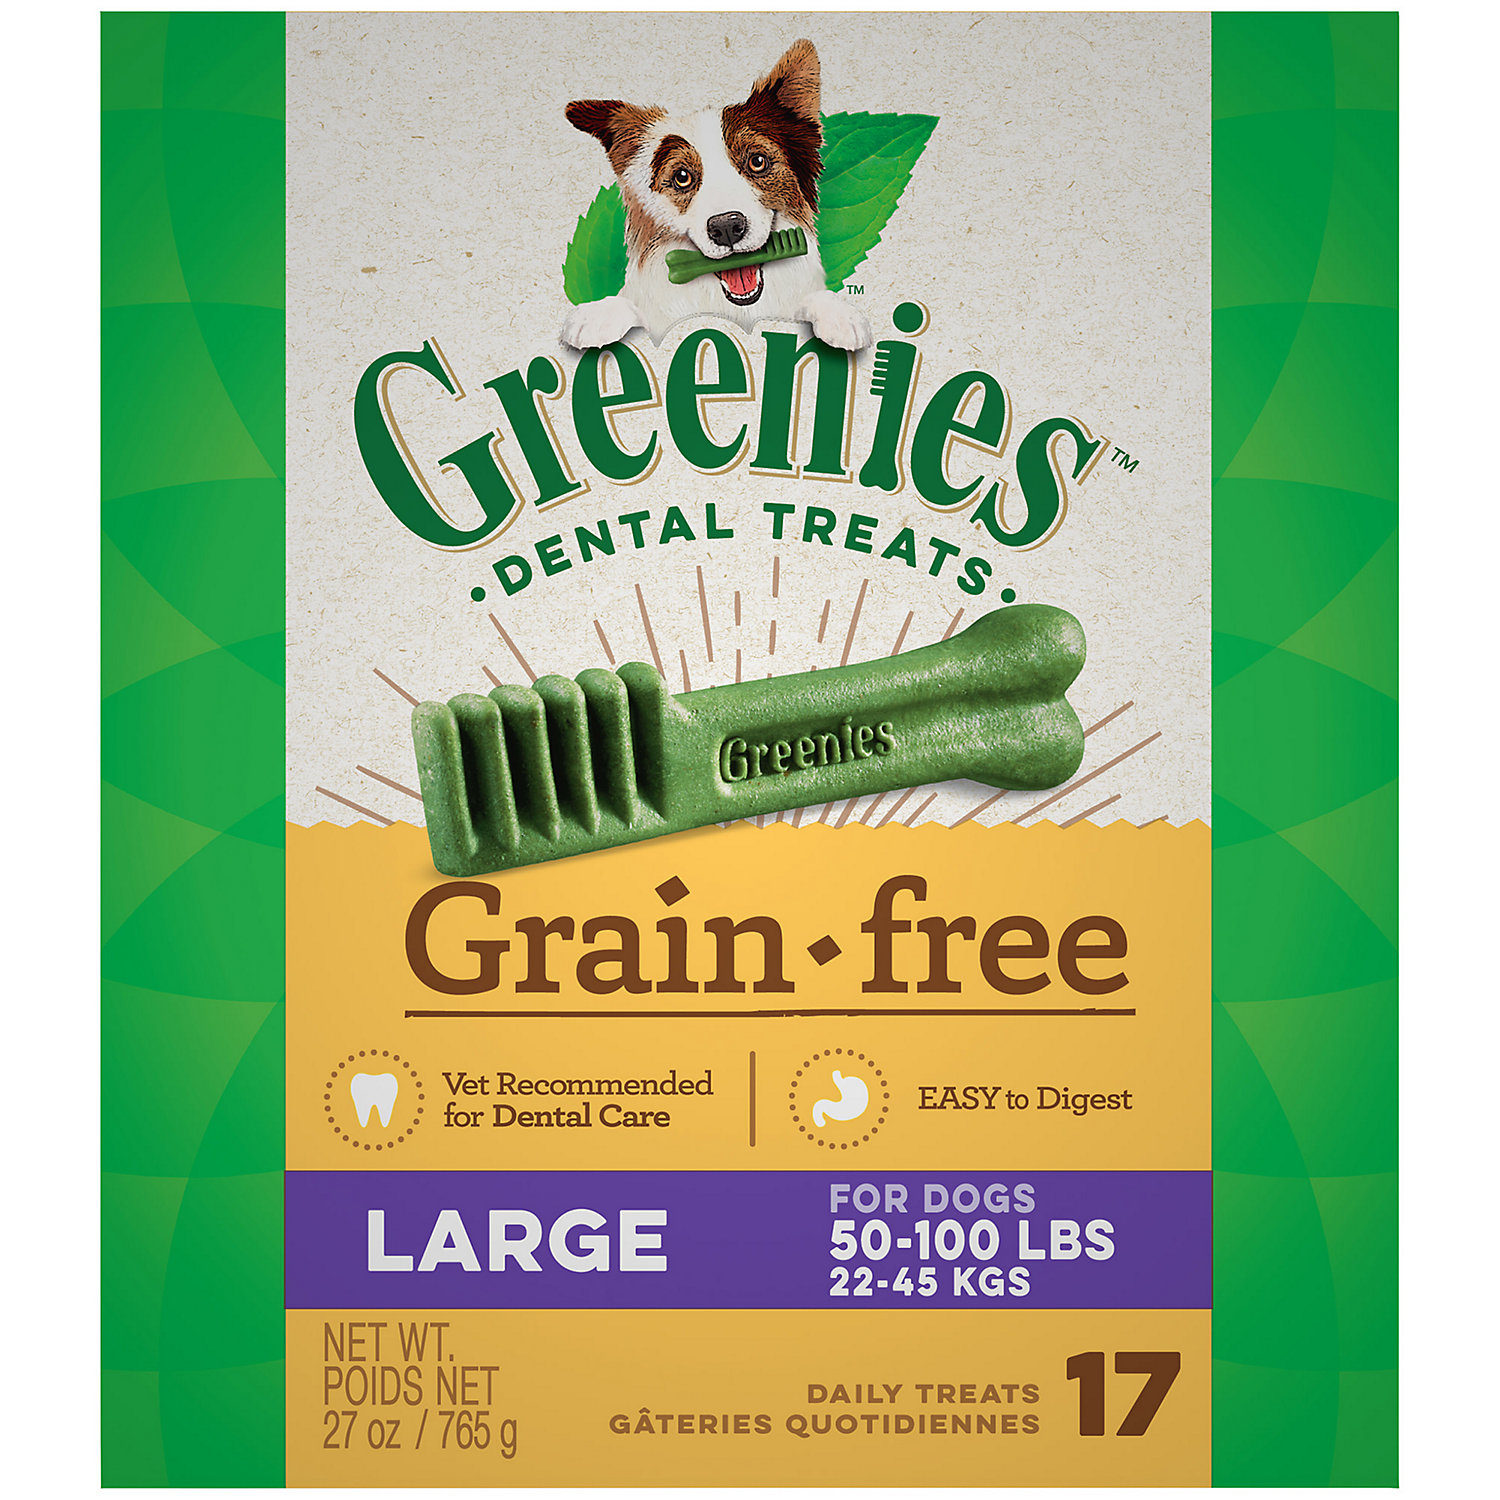 Greenies Grain Free Large Dental Treats 27 Oz.